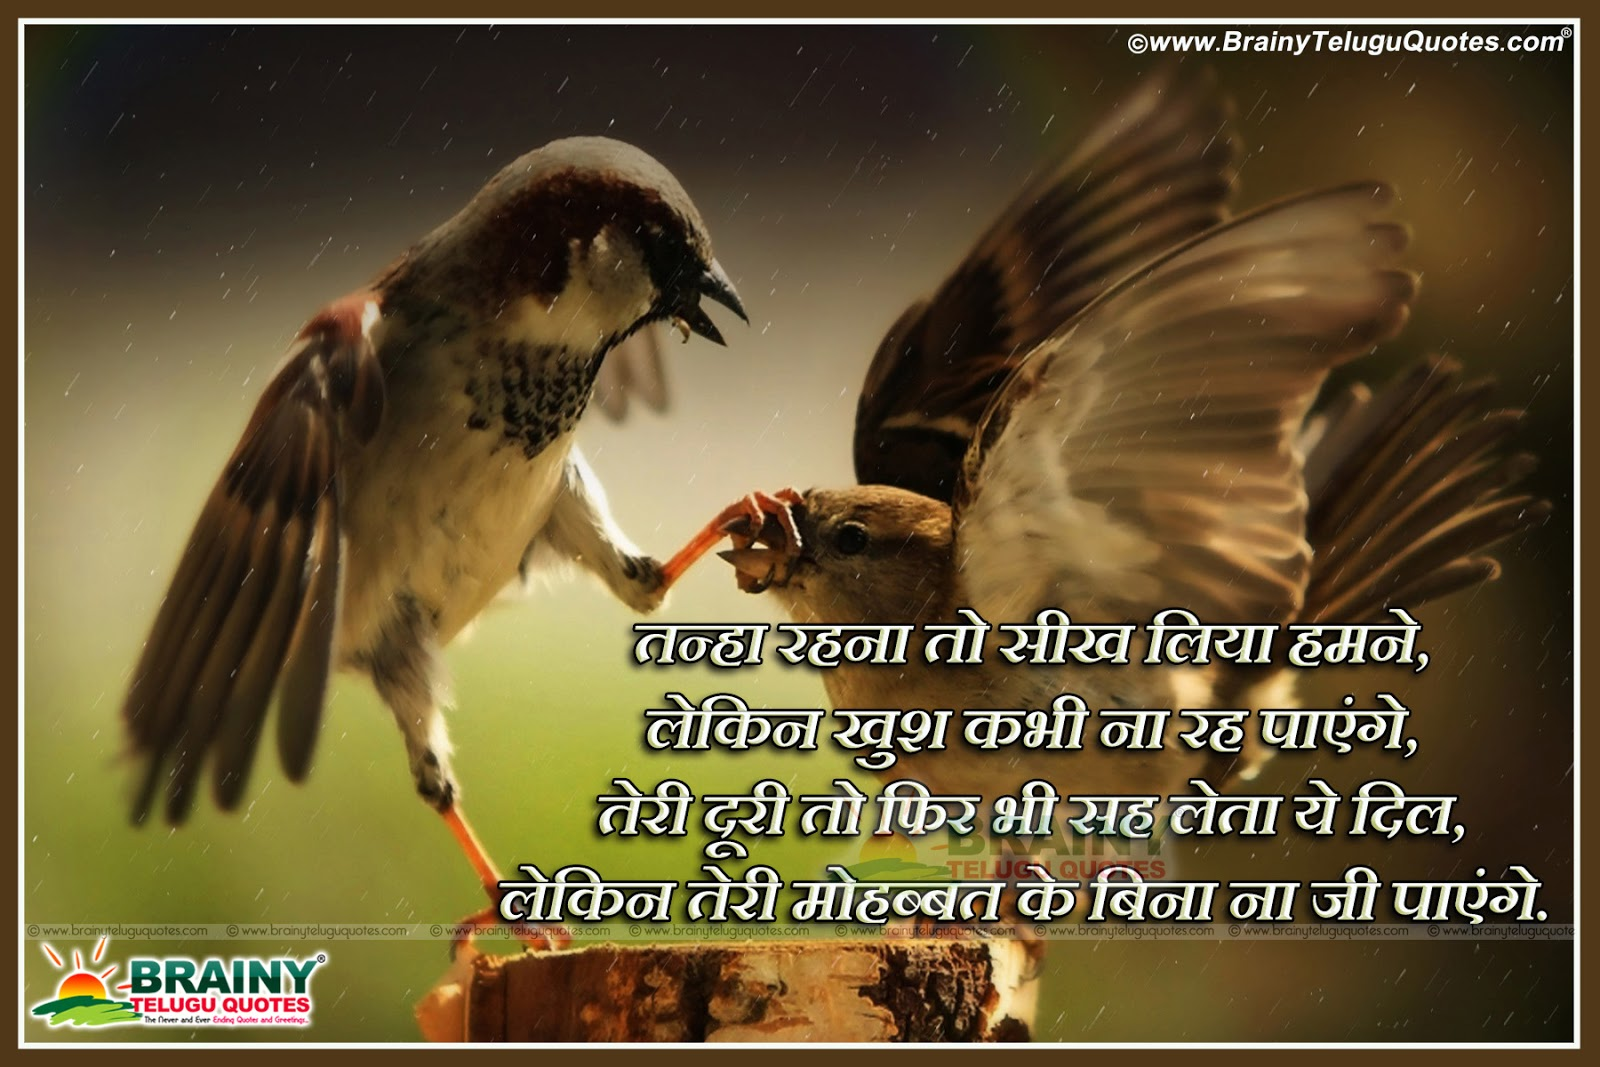 Hindi successful love quotes with love hd wallpapers hindi successful love quotes with love hd wallpapers kristyandbryce Images